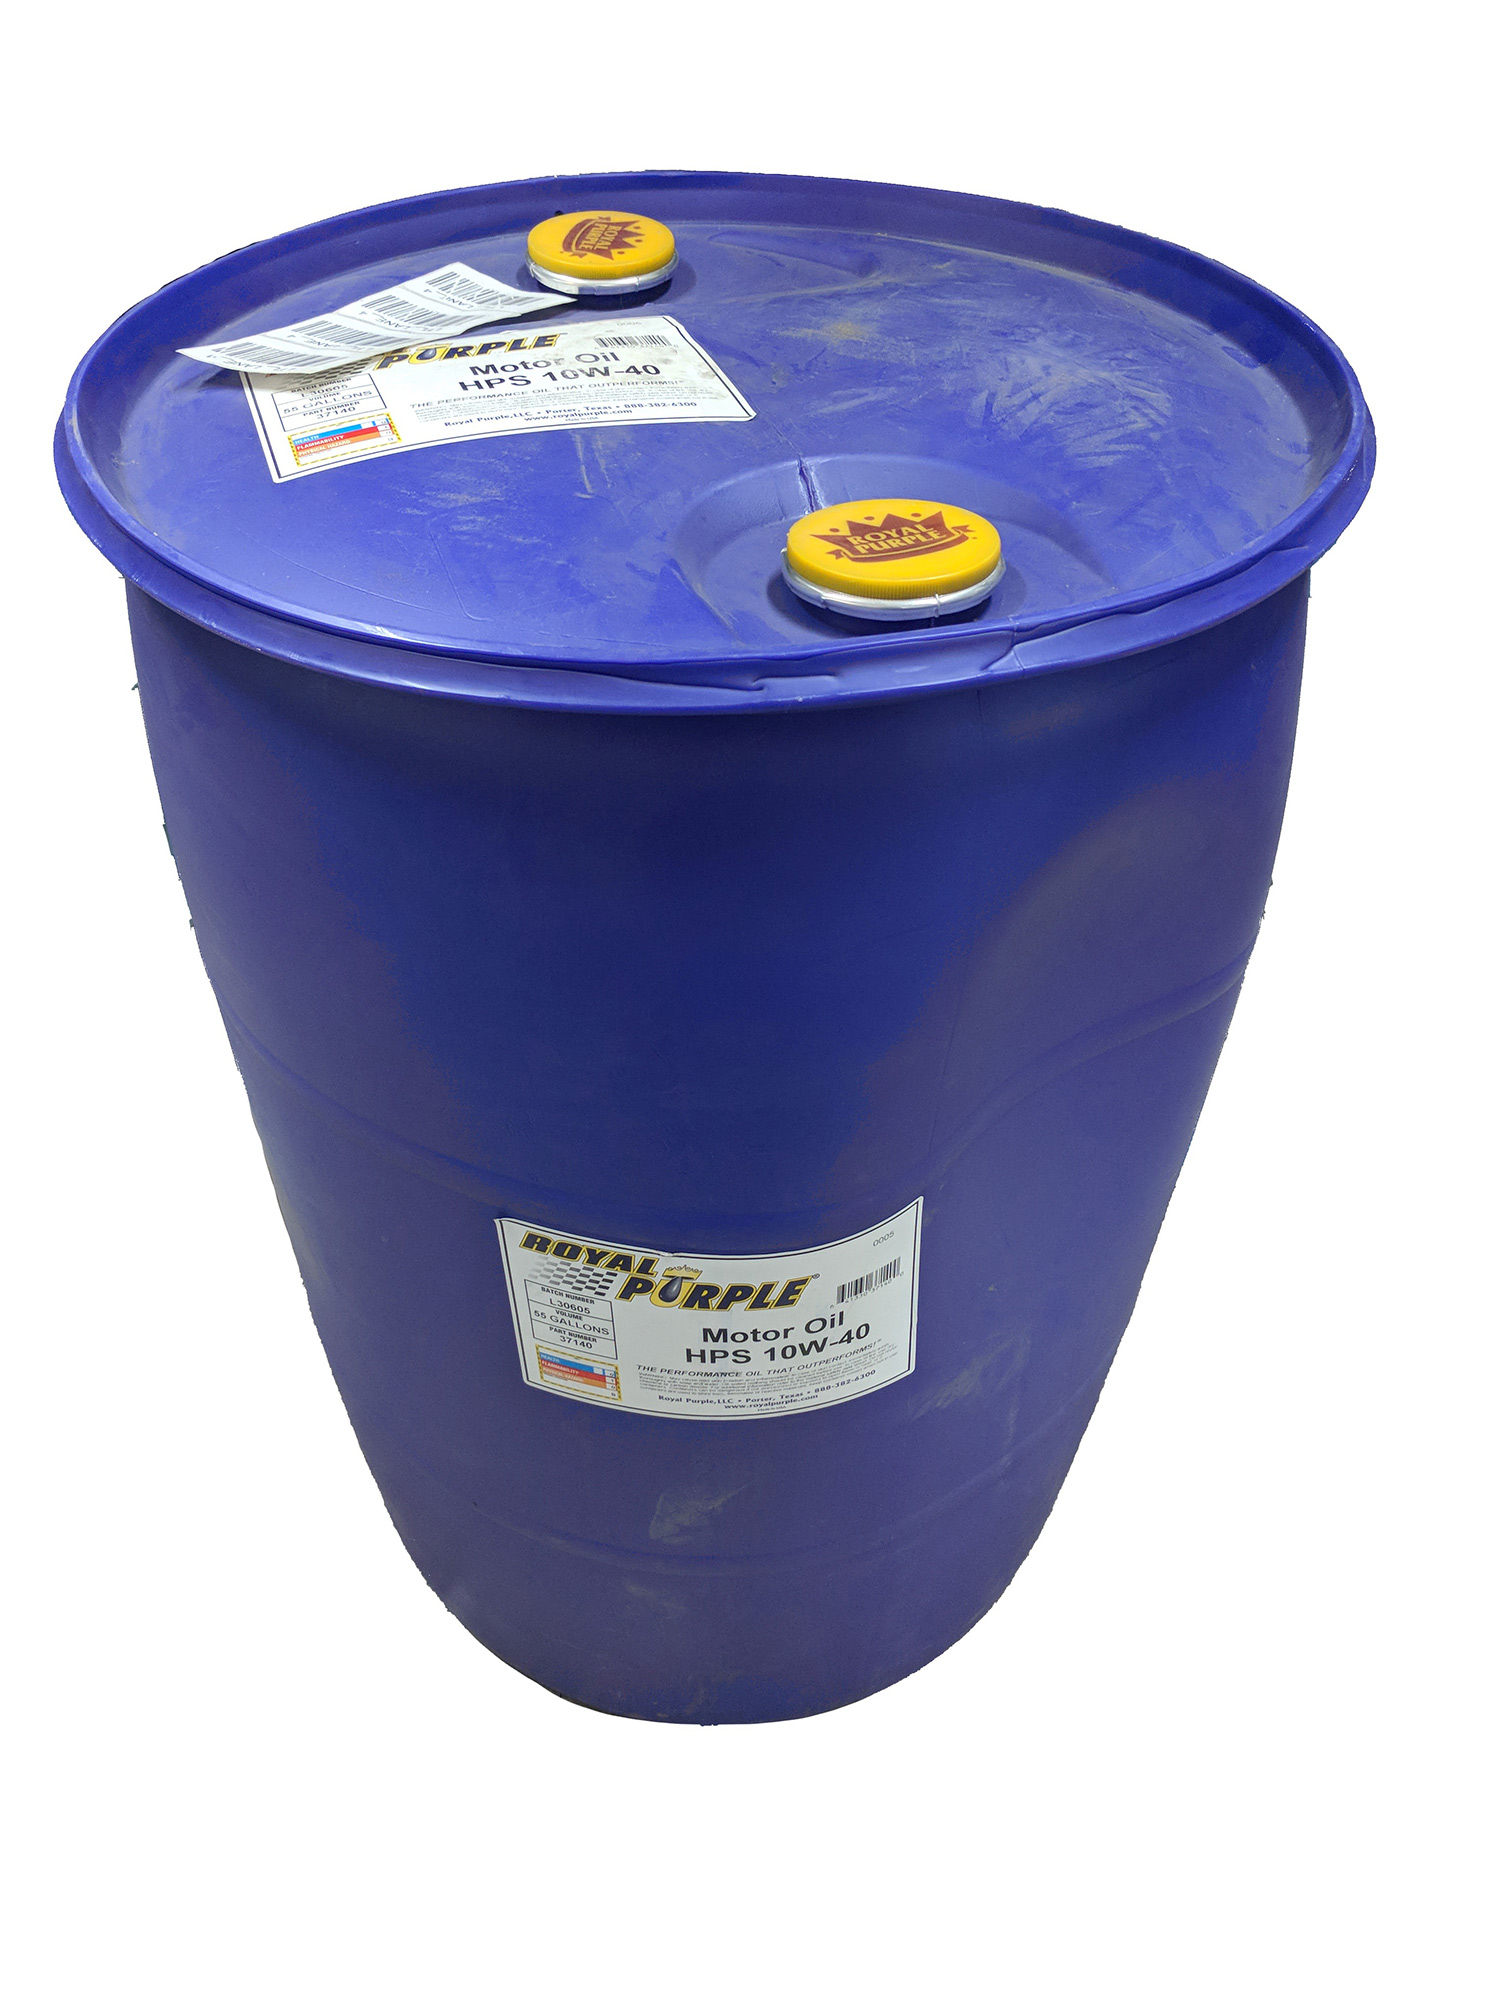 Royal purple 37140 55 gallon drum hps 10w 40 synthetic for Gallon of motor oil